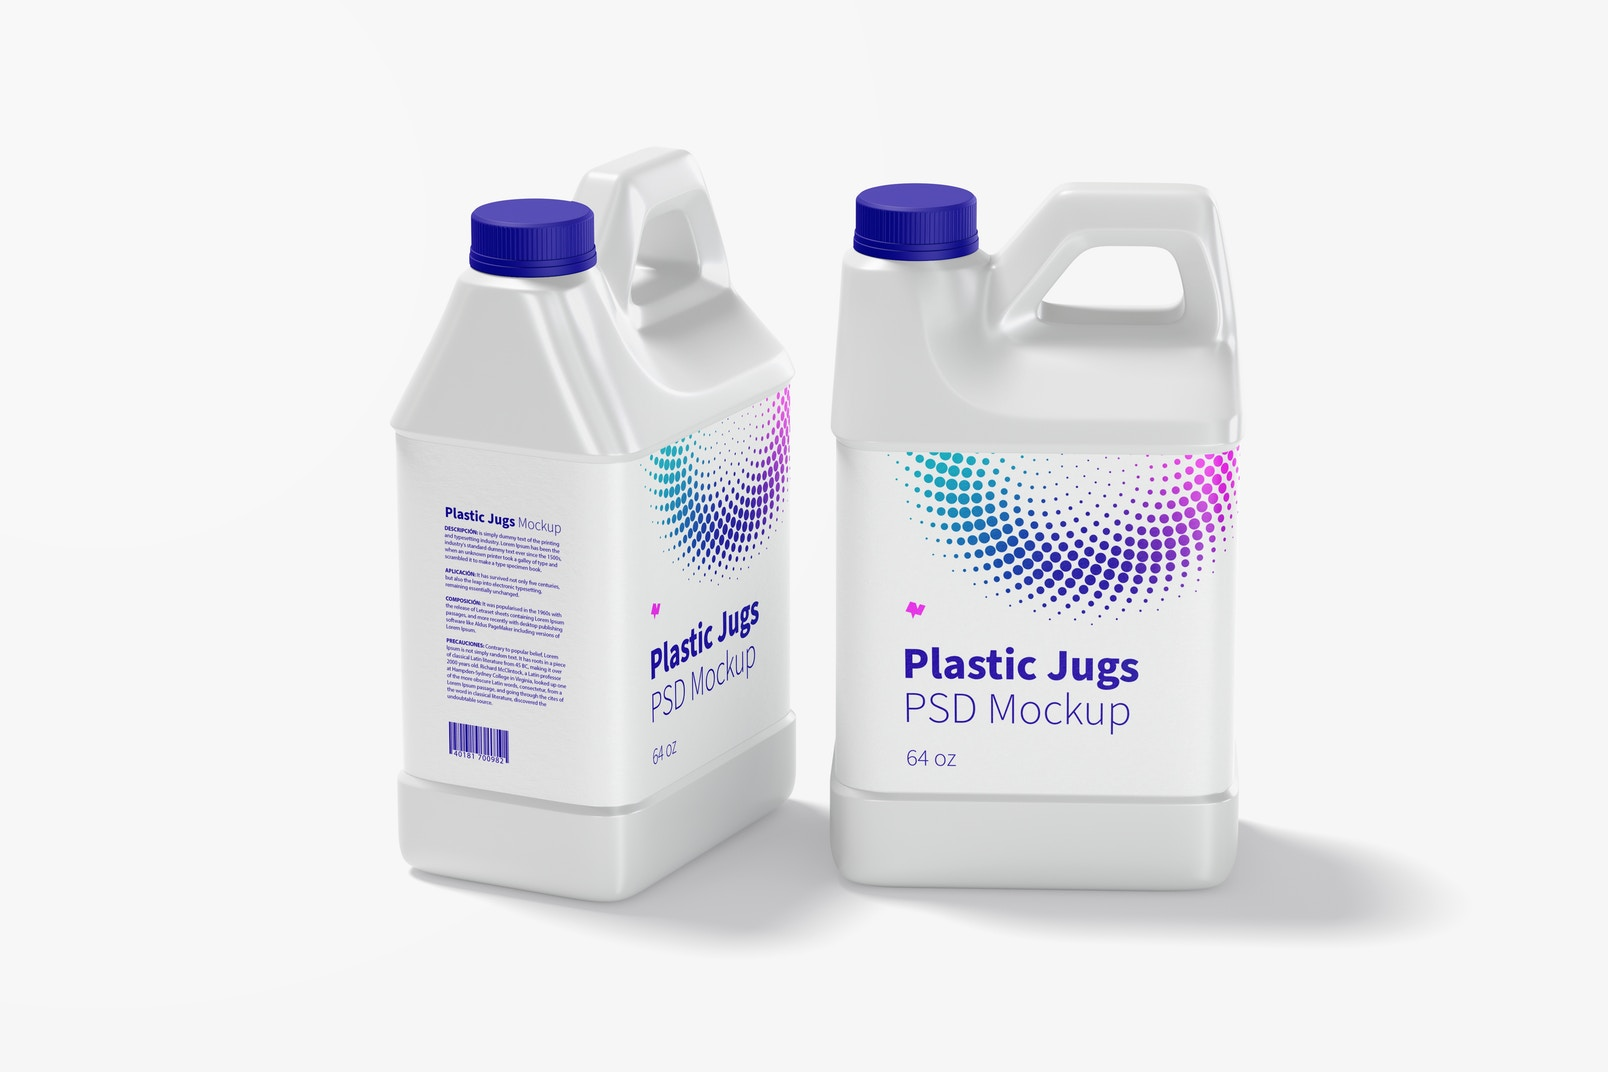 64 oz Plastic Jugs Mockup, Side and Front View